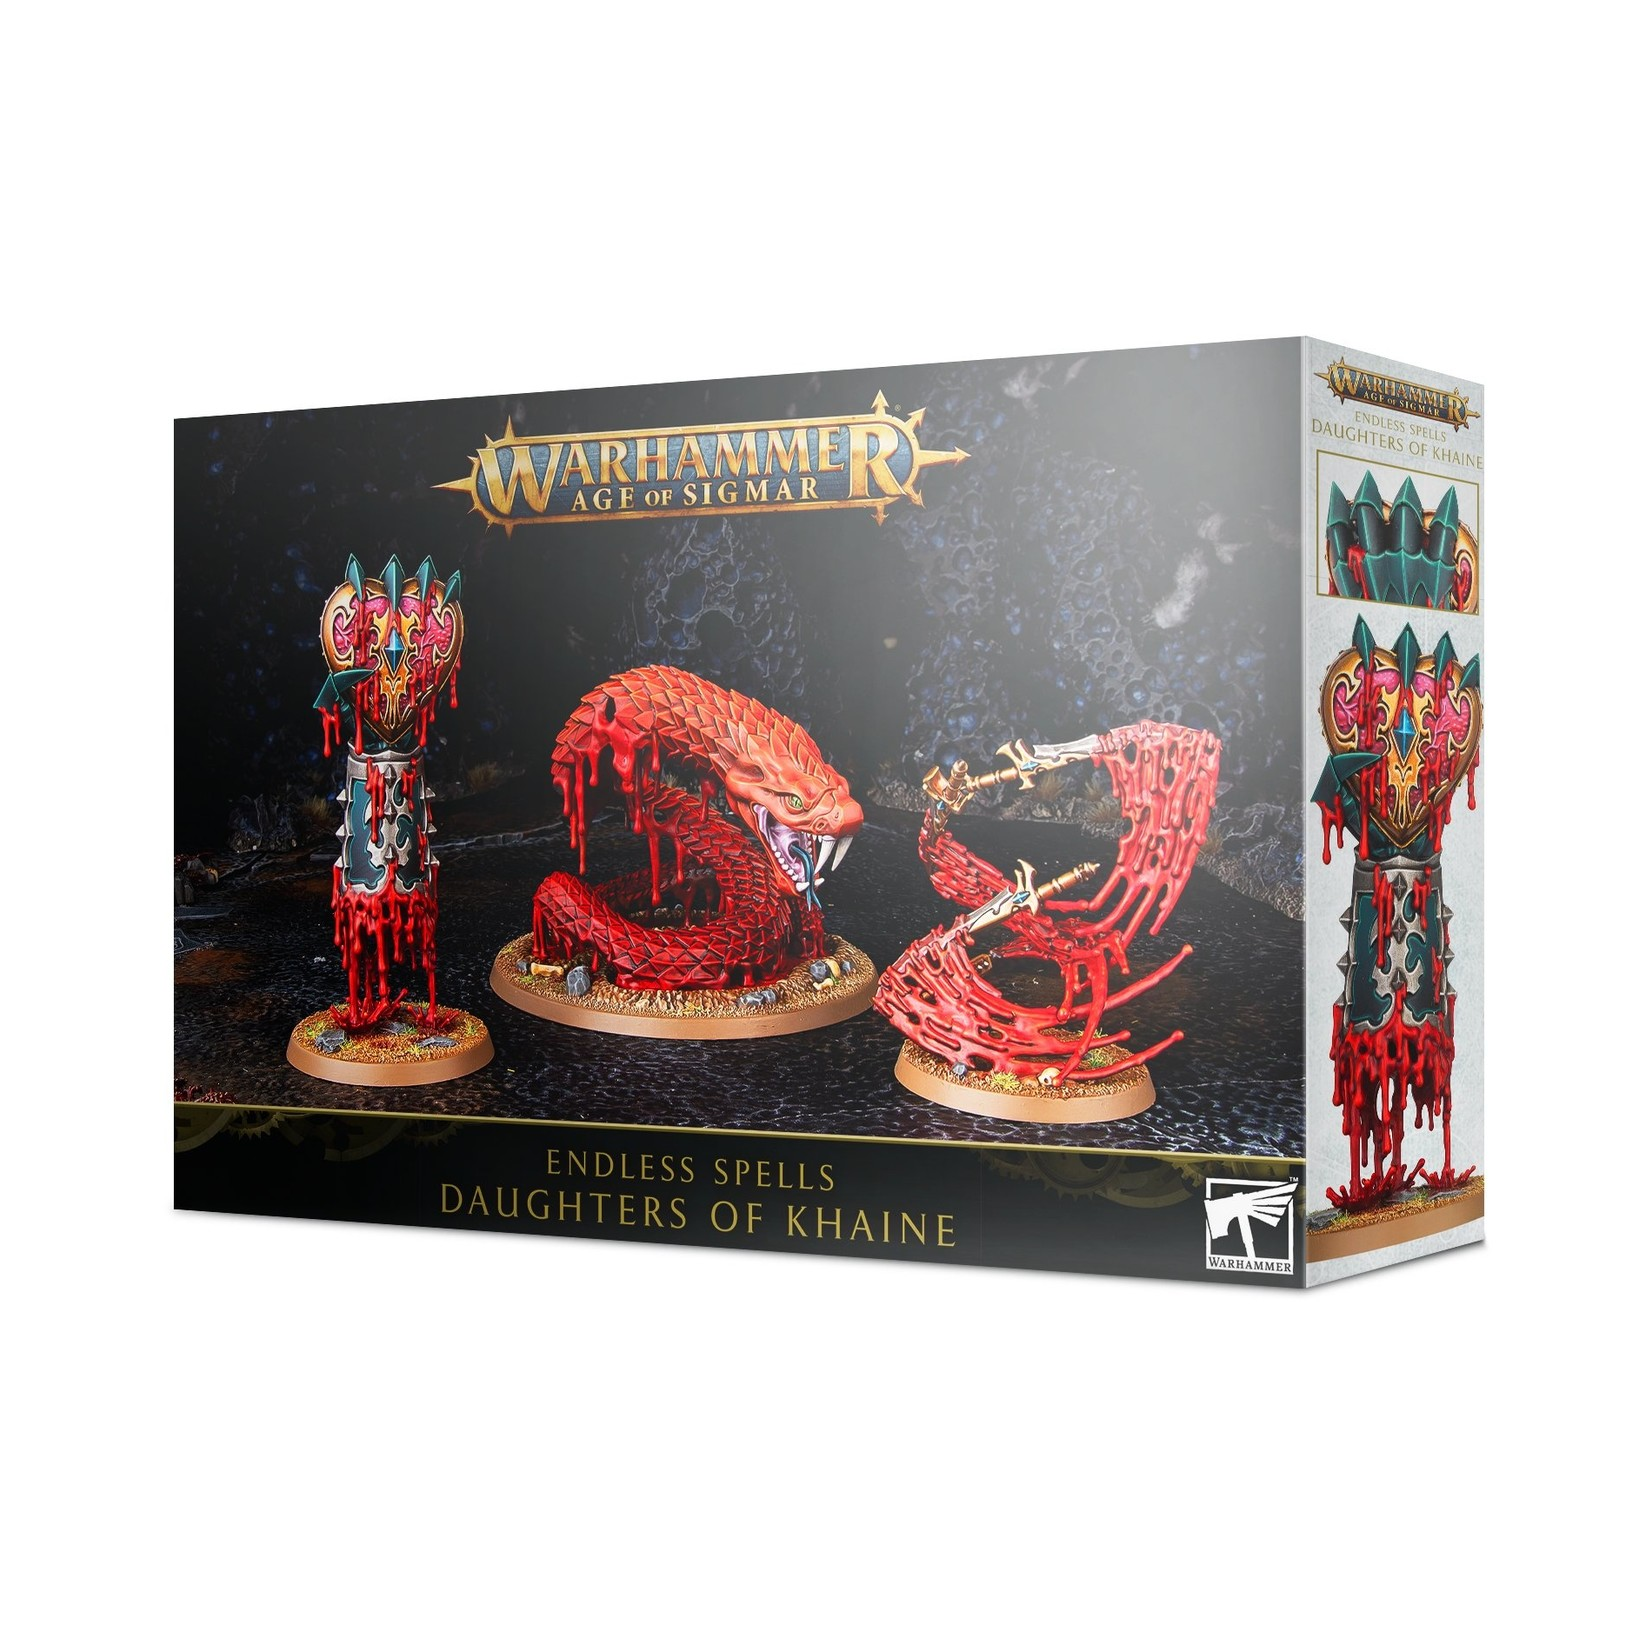 Endless Spells Daughters of Khaine (AOS)